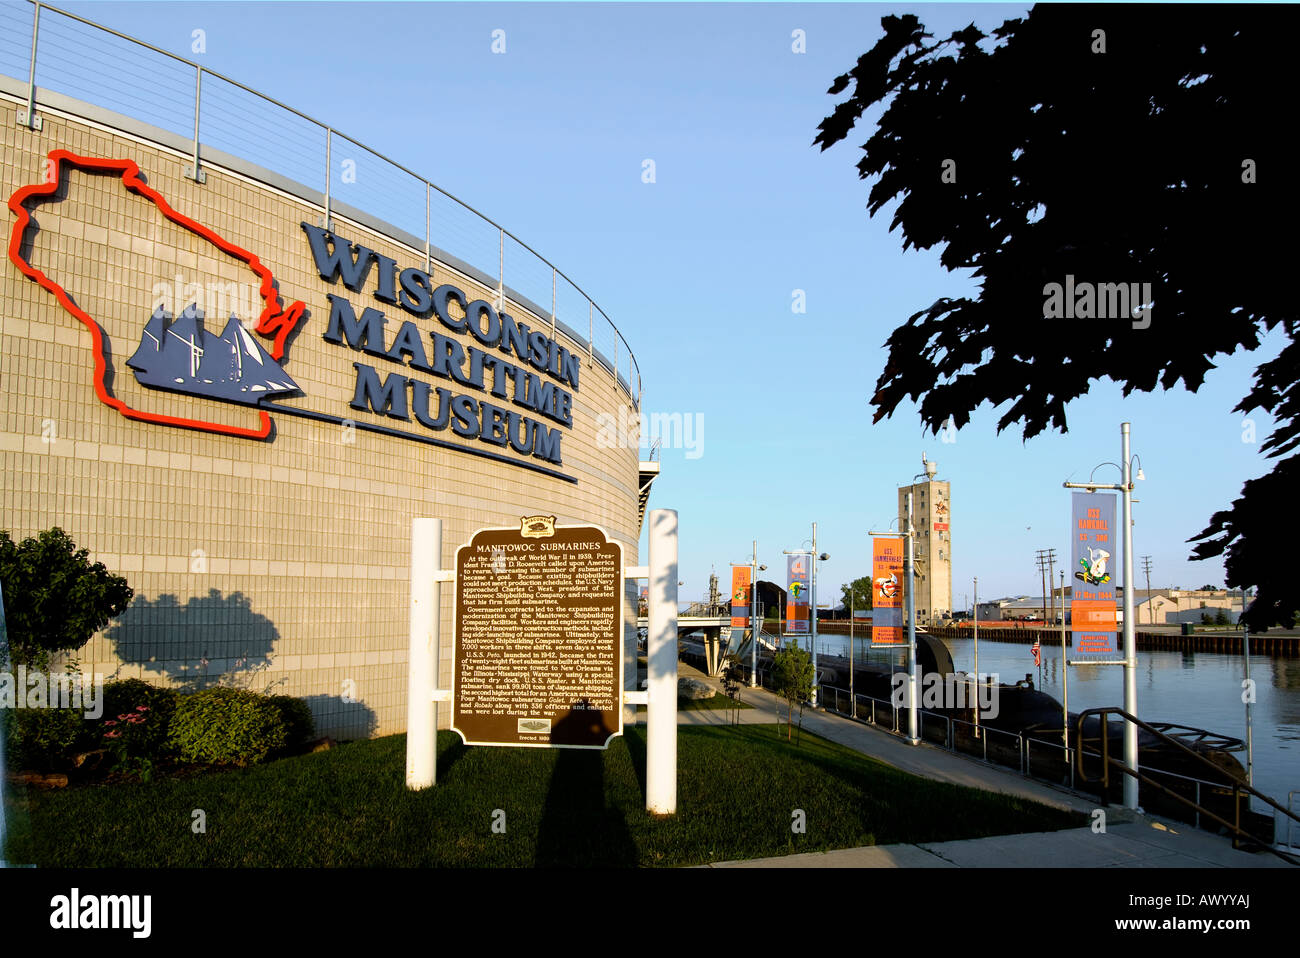 The Wisconsin Maritime Museum In Manitowoc Wi Where The U S S ...